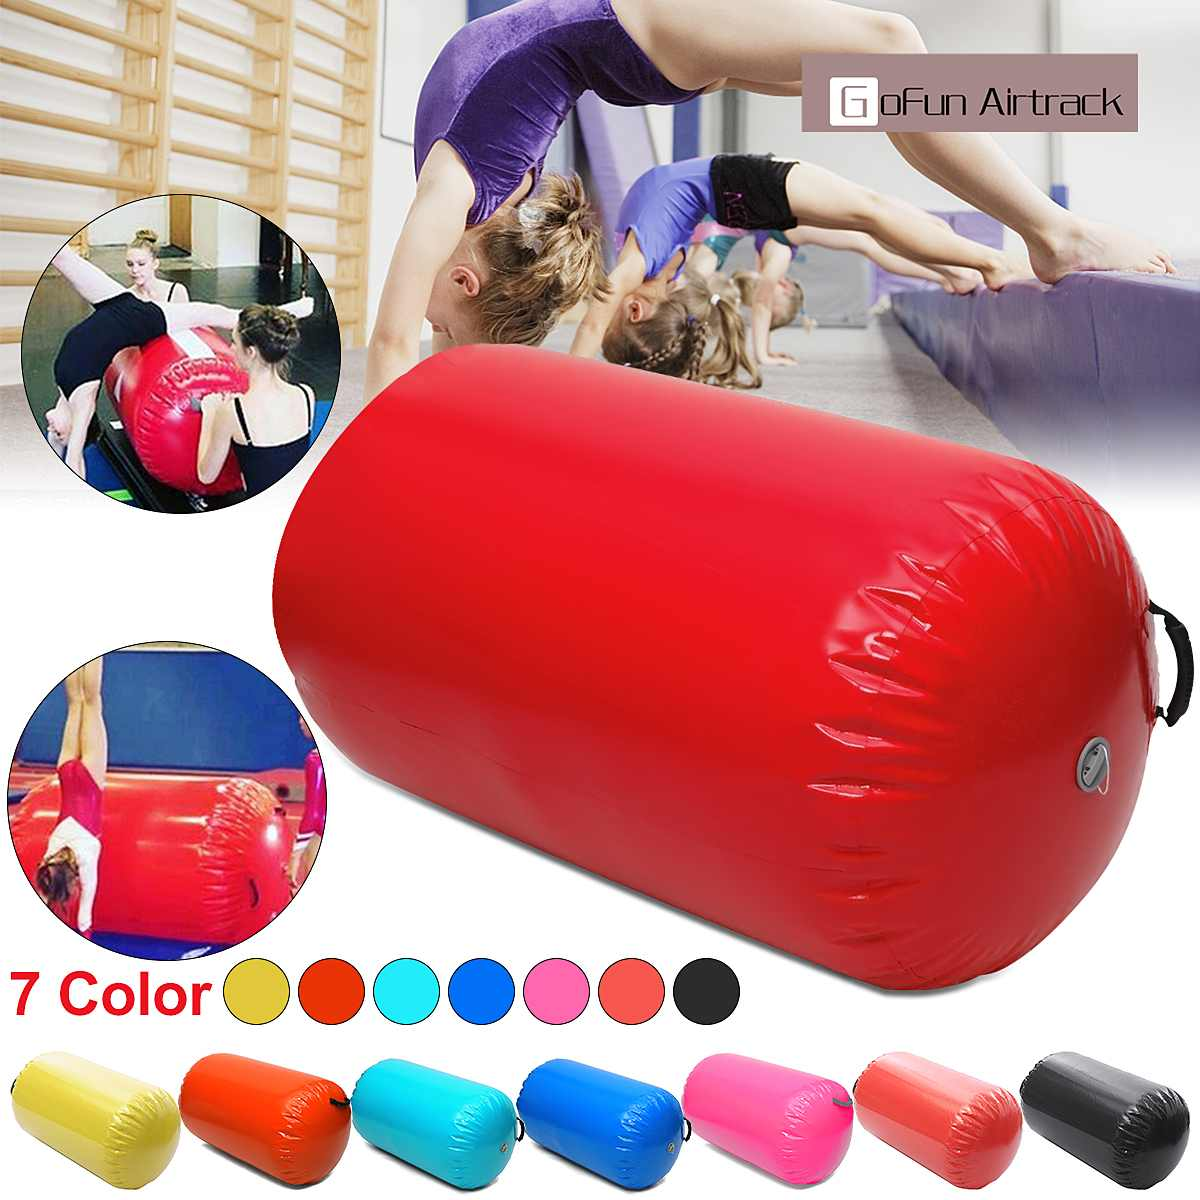 Gofun AirTrack Air Cylinder Tumbling Track Gymnastics Exercise Column Inflatable Gym Inverted Backflip Training Children Safe